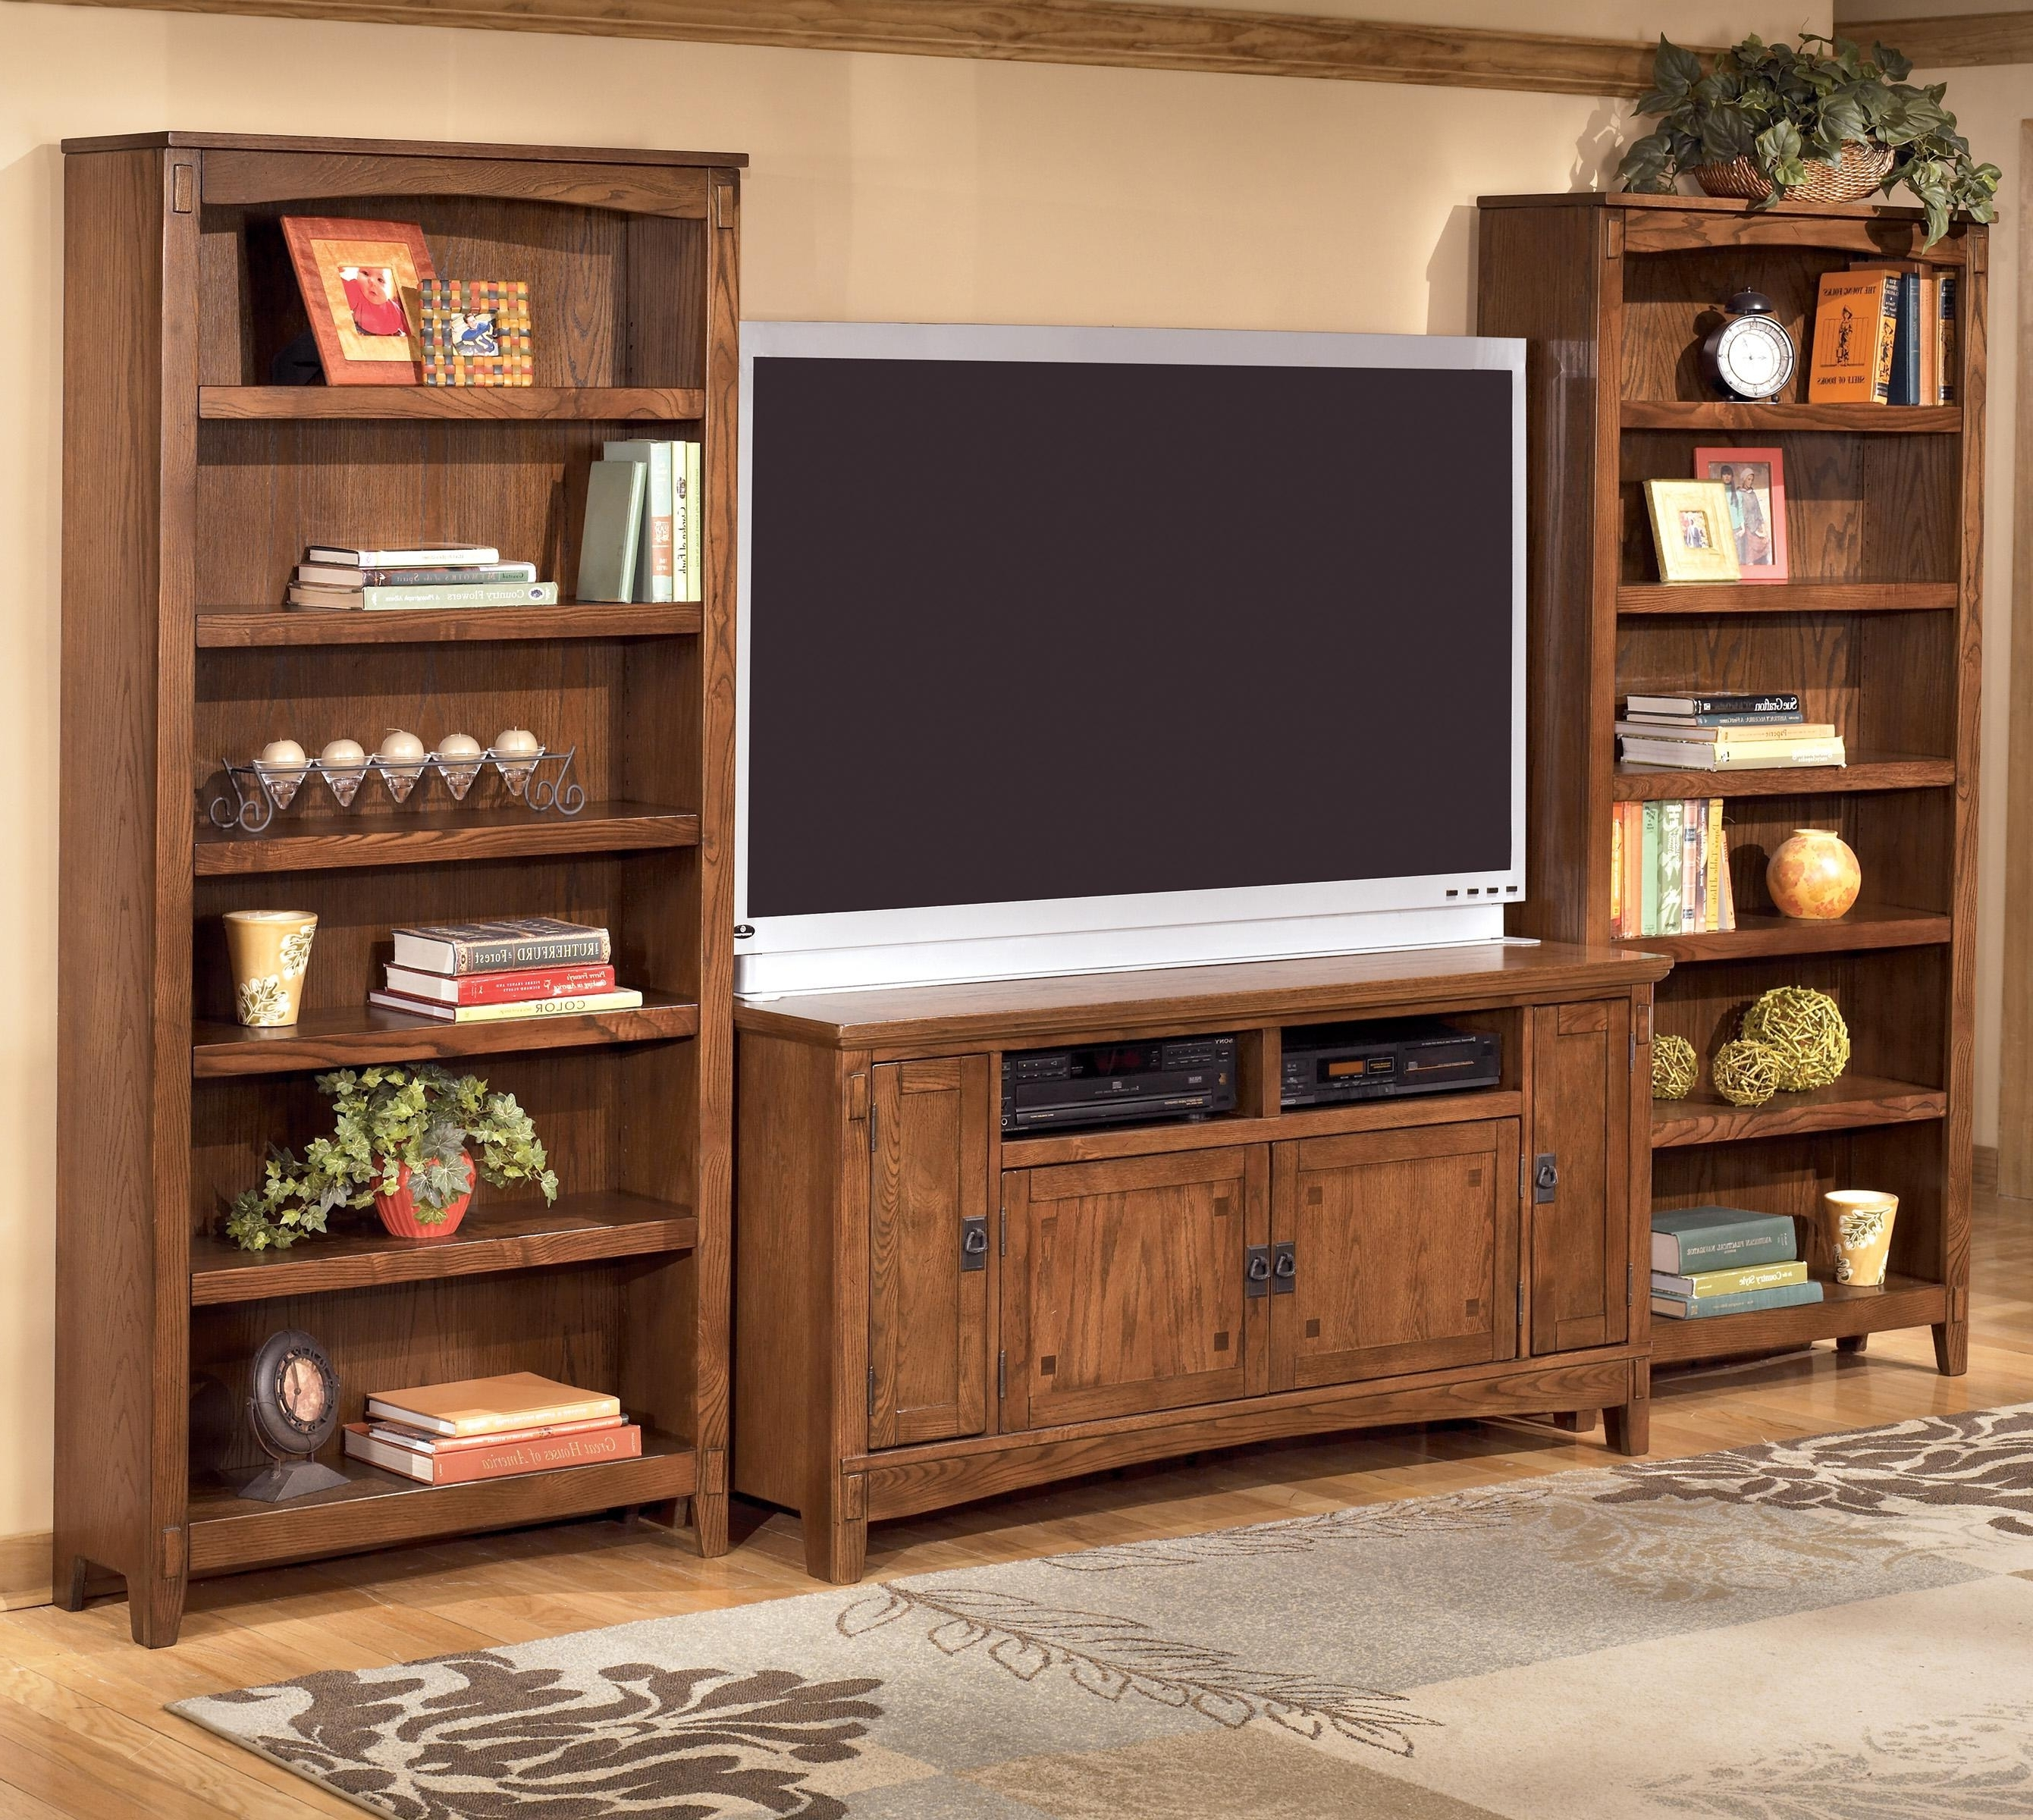 Tv And Bookshelves With Fashionable 60 Inch Tv Stand & 2 Large Bookcasesashley Furniture (View 12 of 15)